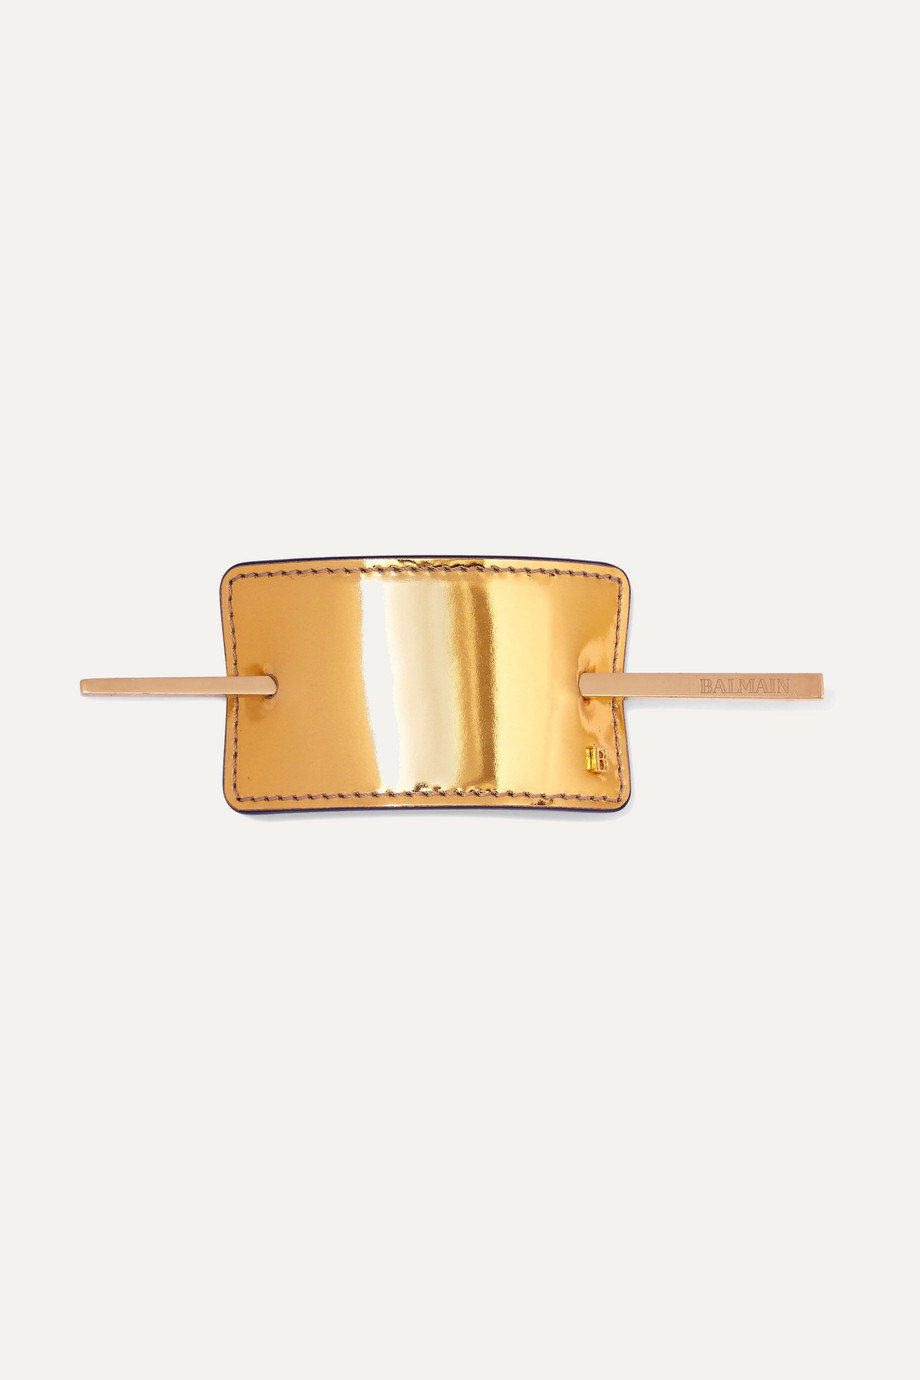 BALMAIN PARIS HAIR COUTURE Gold-tone and metallic leather hair pin